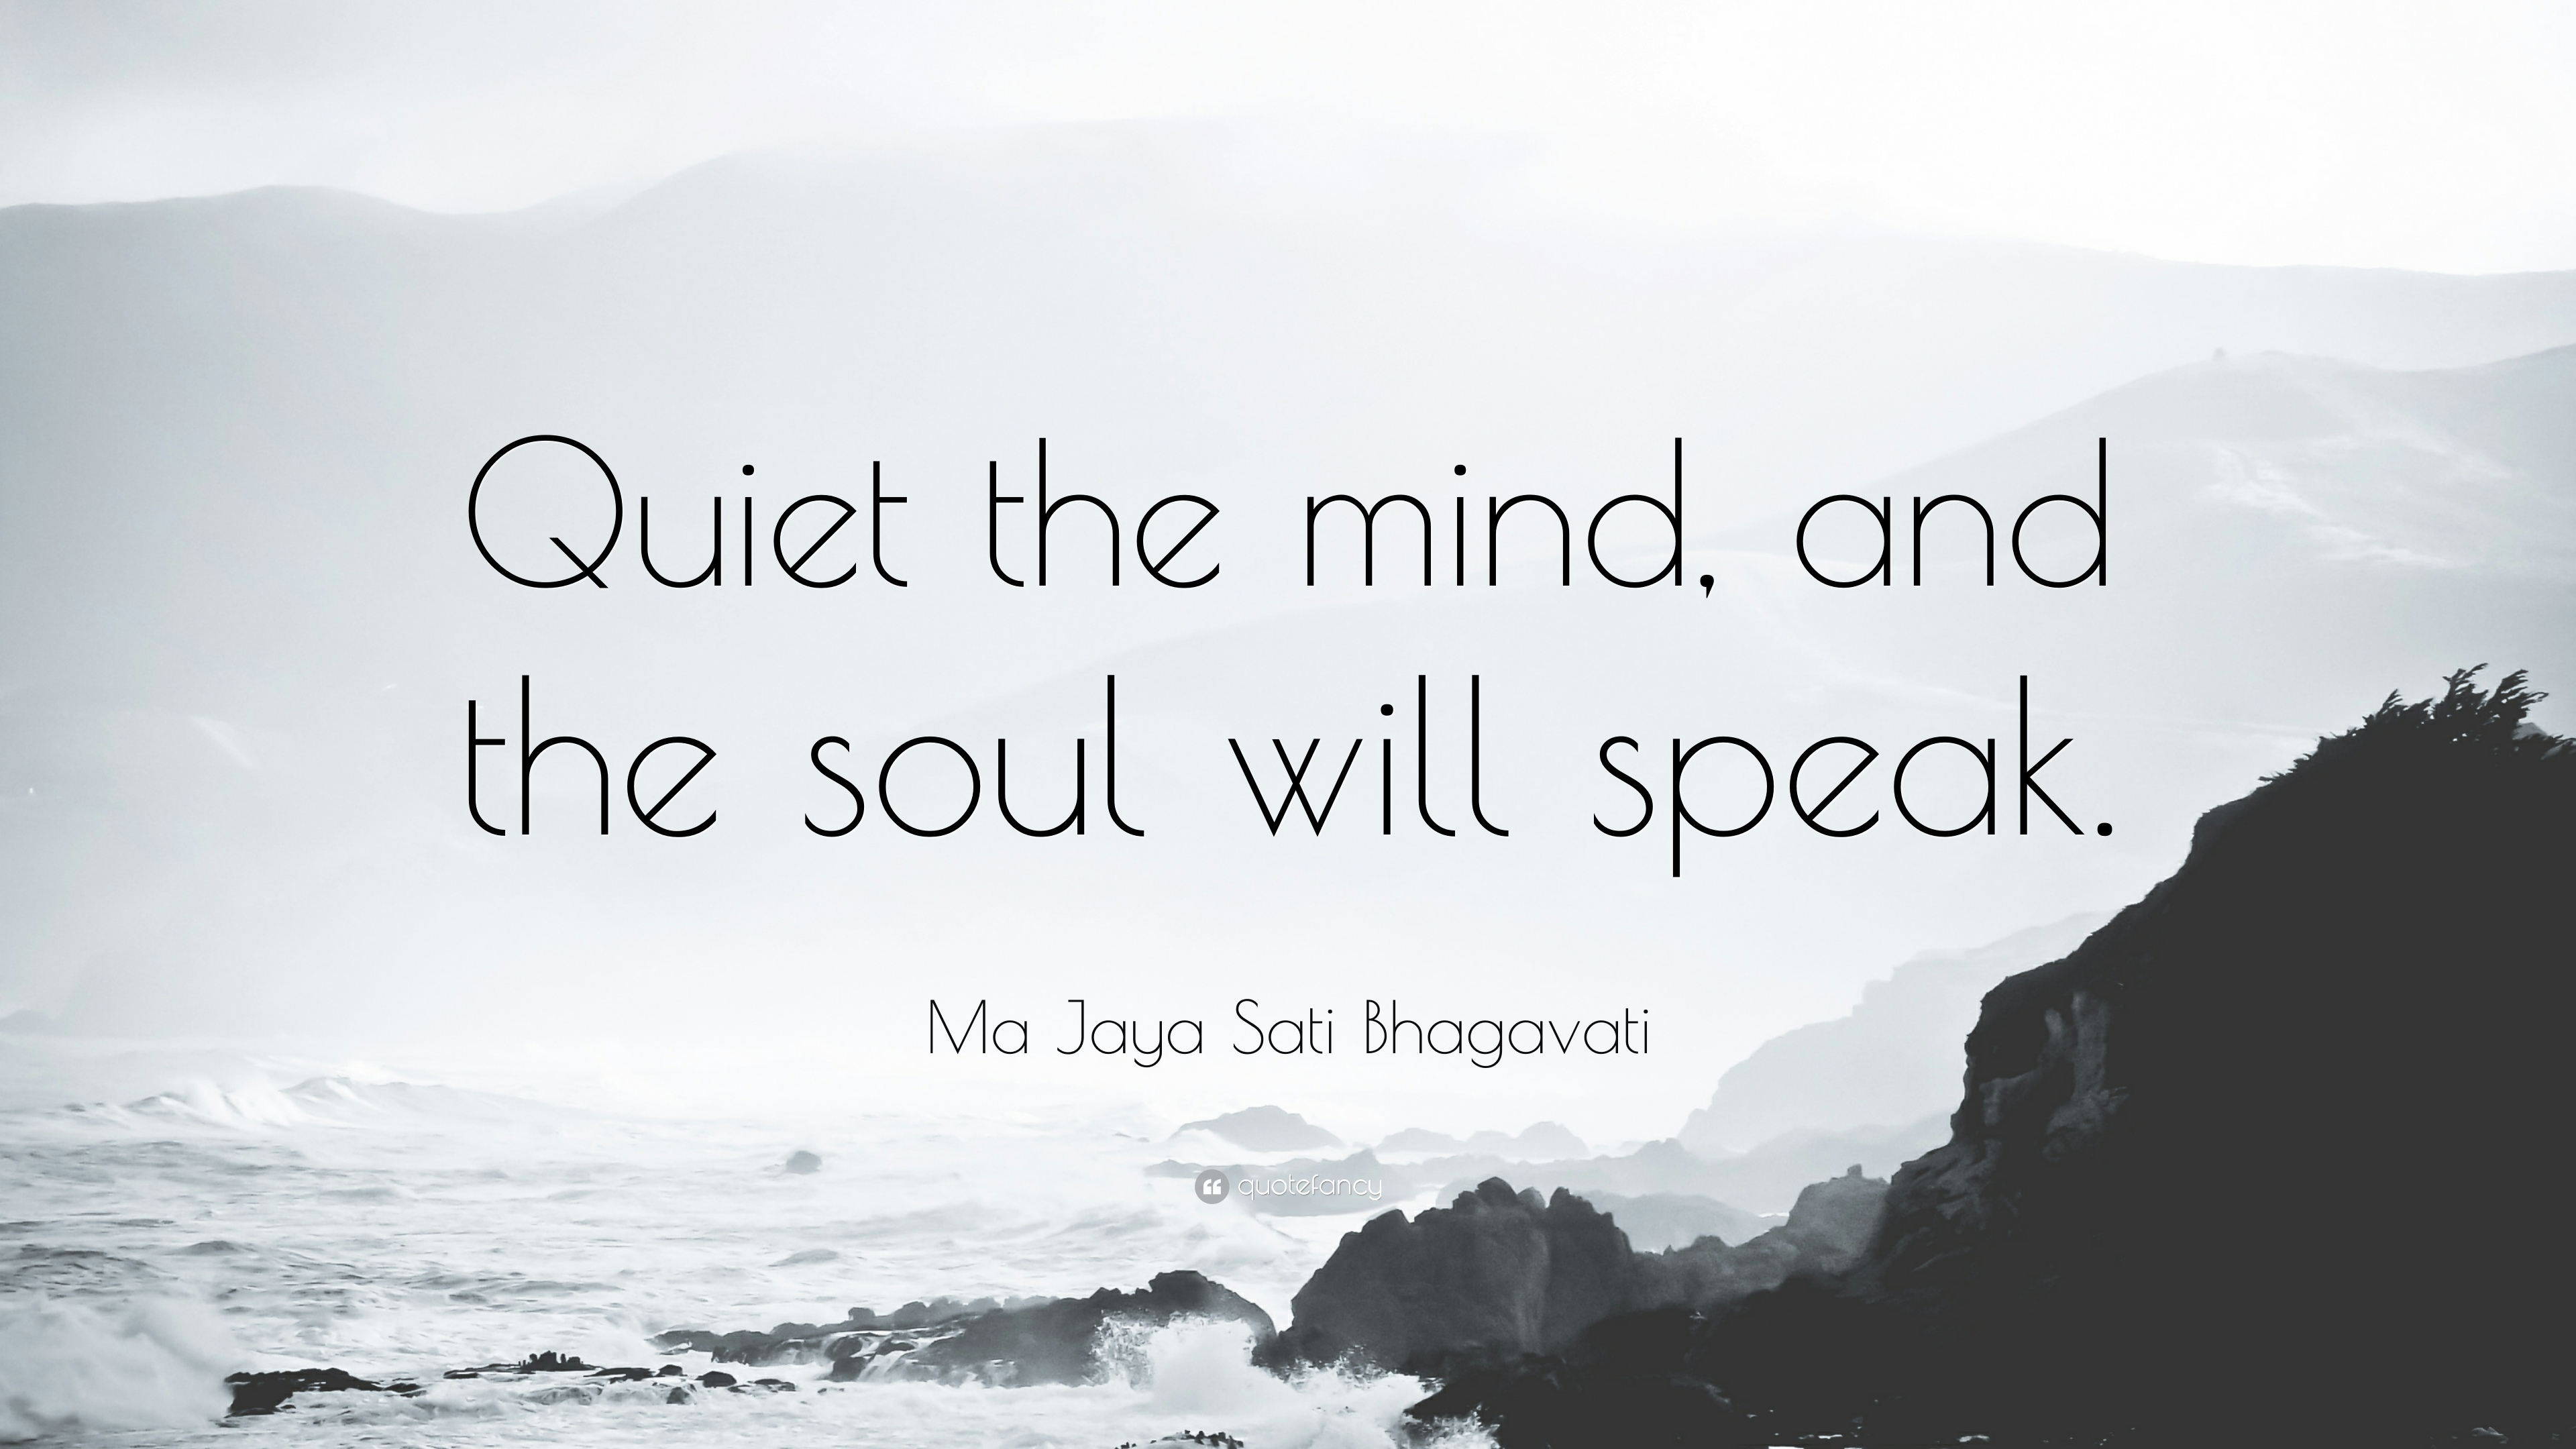 Quotes Quiet Ma Jaya Sati Bhagavati Quotes 15 Wallpapers  Quotefancy